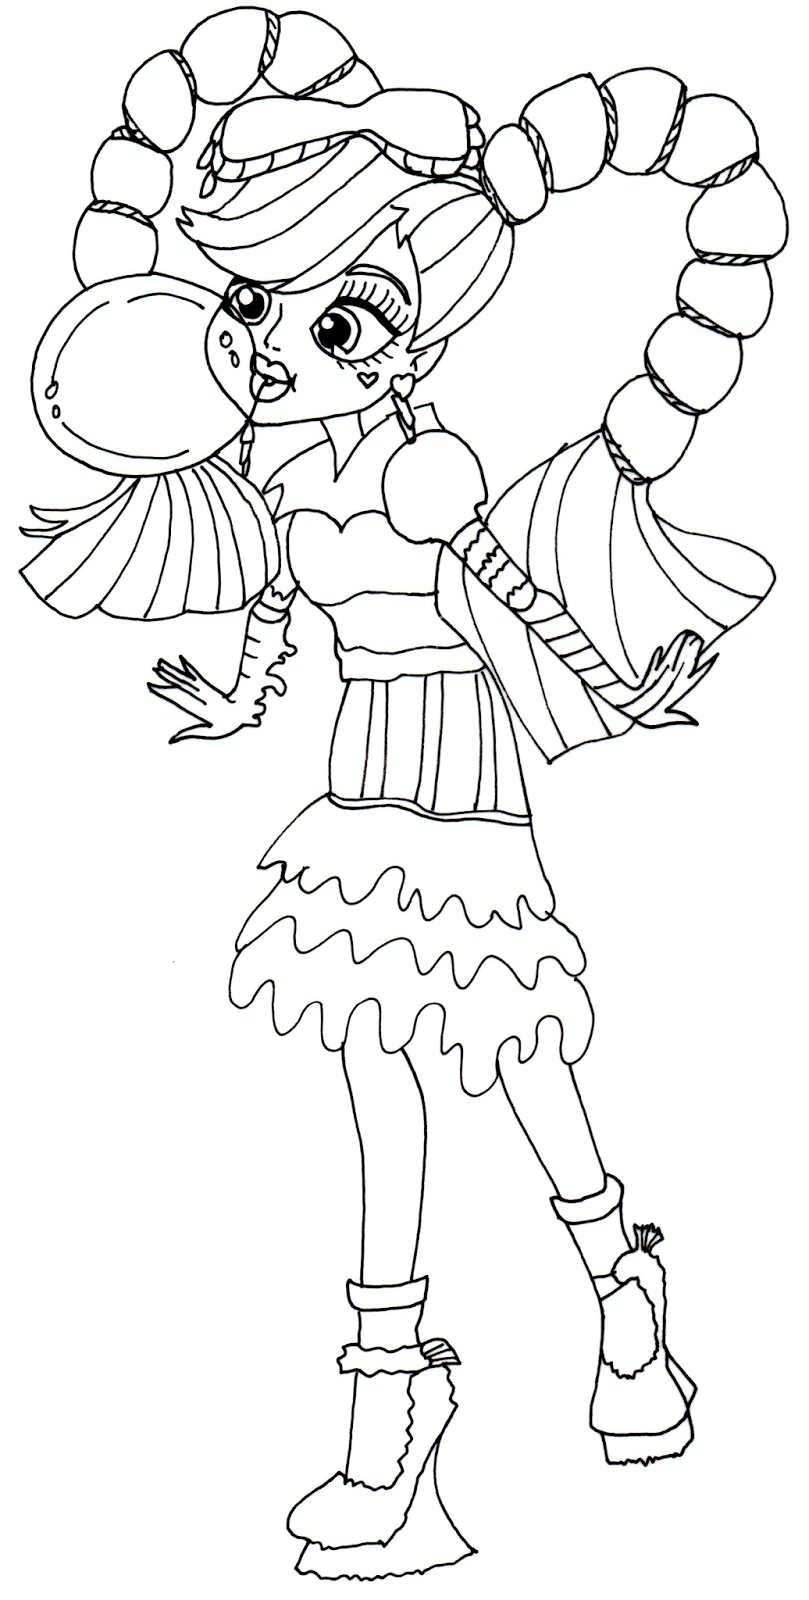 new monster high dolls 2014 coloring pages: Draculaura